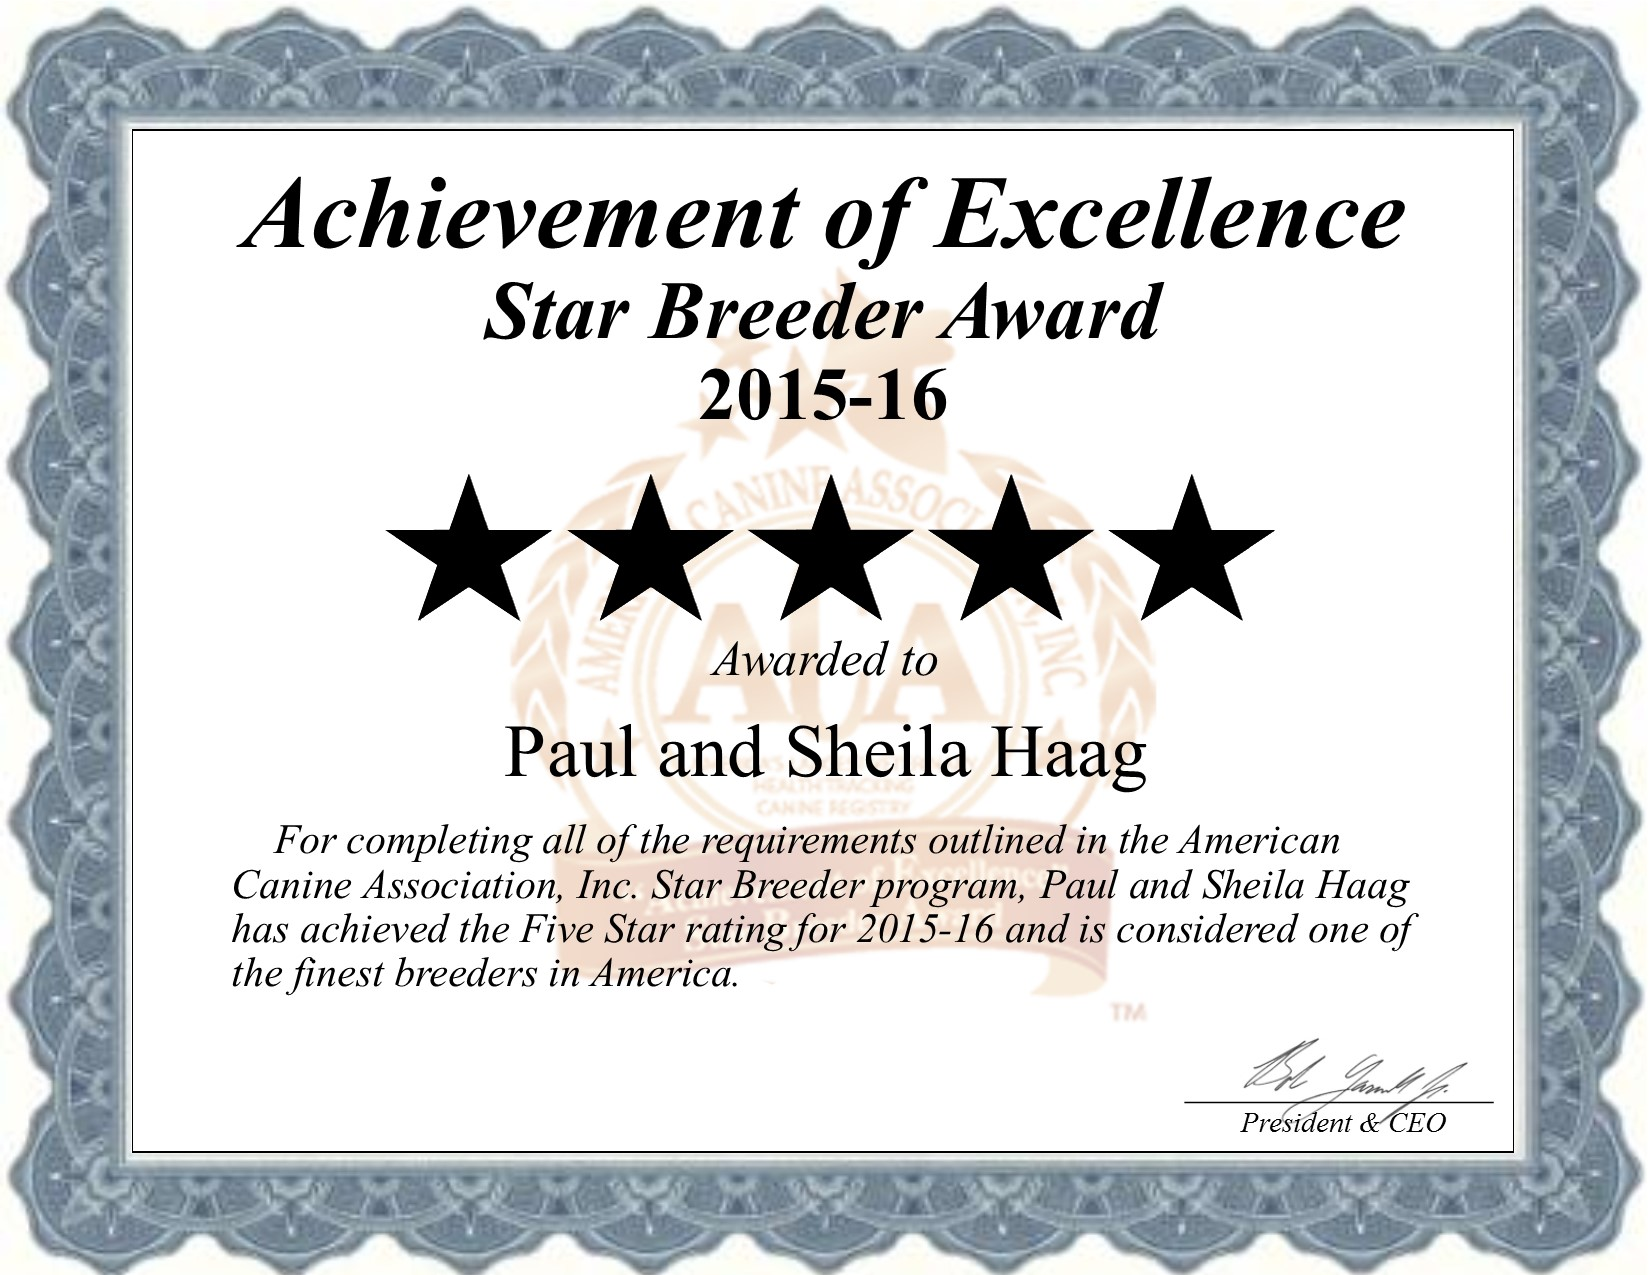 Paul, Haag, Sheila, Haag, dog, breeder, paul-haag, sheila-haag, certificate, dog-breeder, eden, vally, mn, minnesota, kennels, usda, no, 41-a-0281